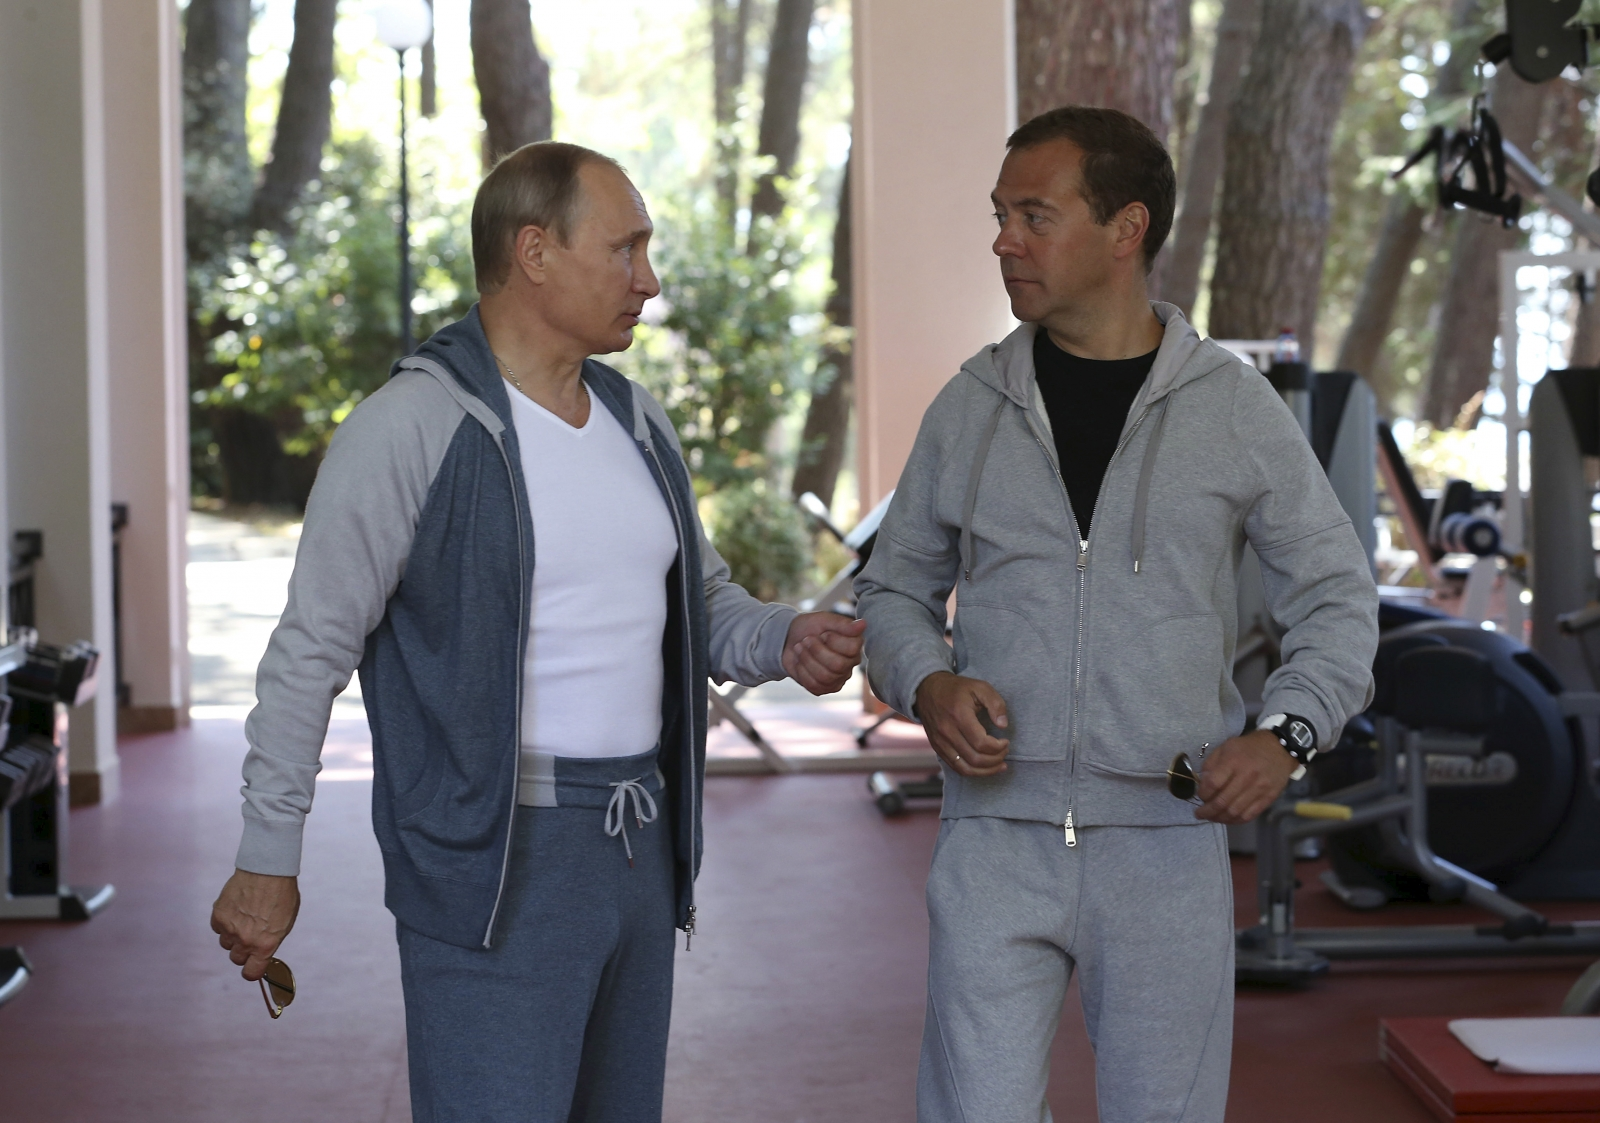 Putin and Medvedev in the gym